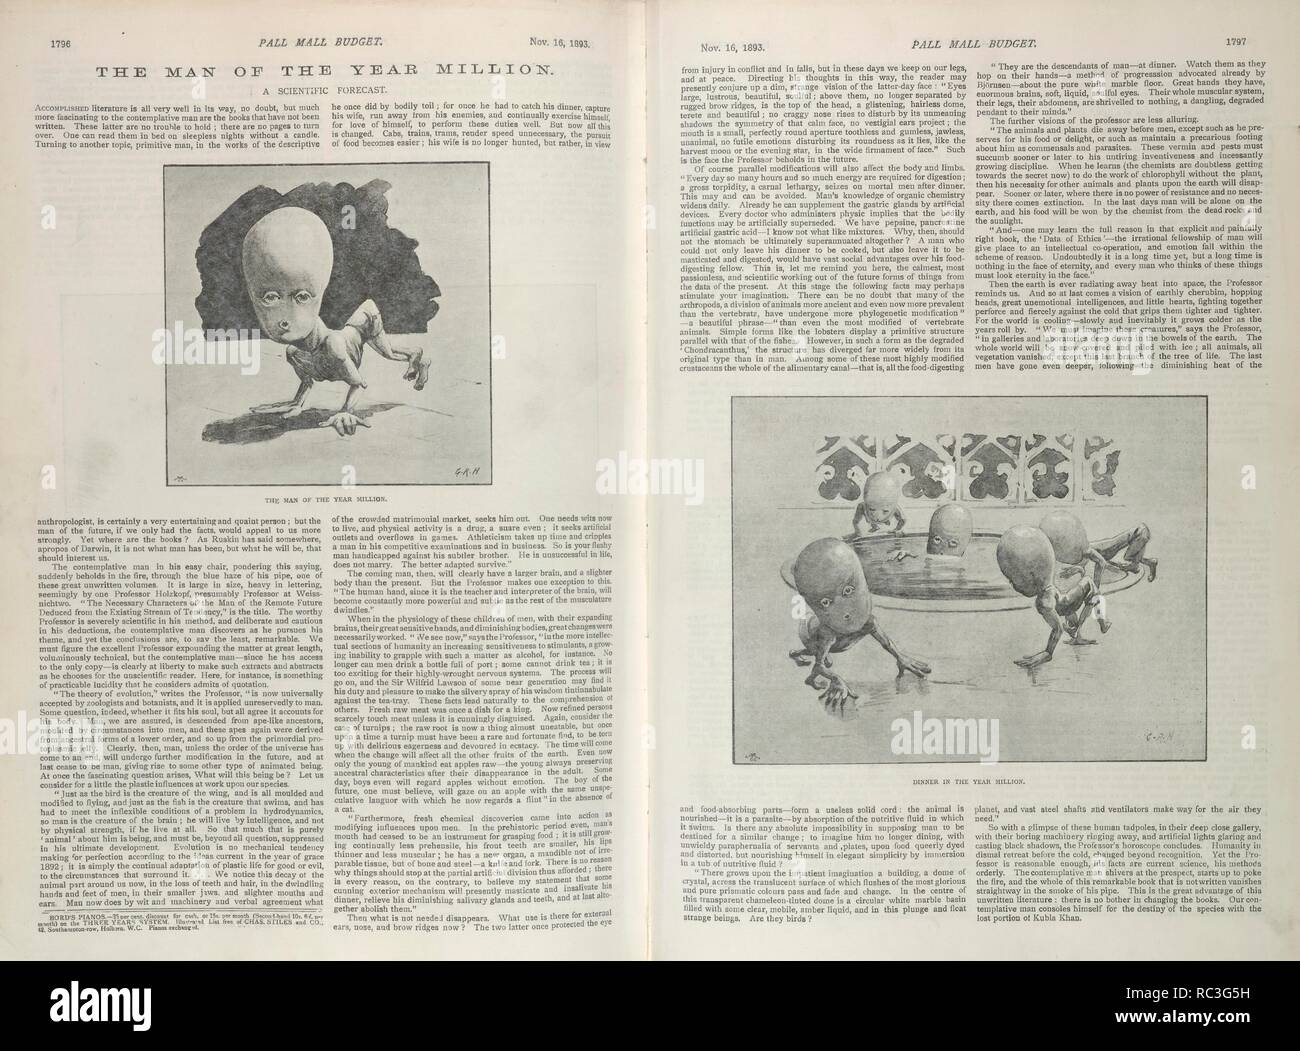 The man of the year million. A scientific forecast. Dinner in the year million. Pall Mall Budget. London, 16th November 1893. Science. A 19th century forecast of how human beings will develop in the future. Source: Pall Mall Budget, pages 1796-1797. Language: English. Stock Photo